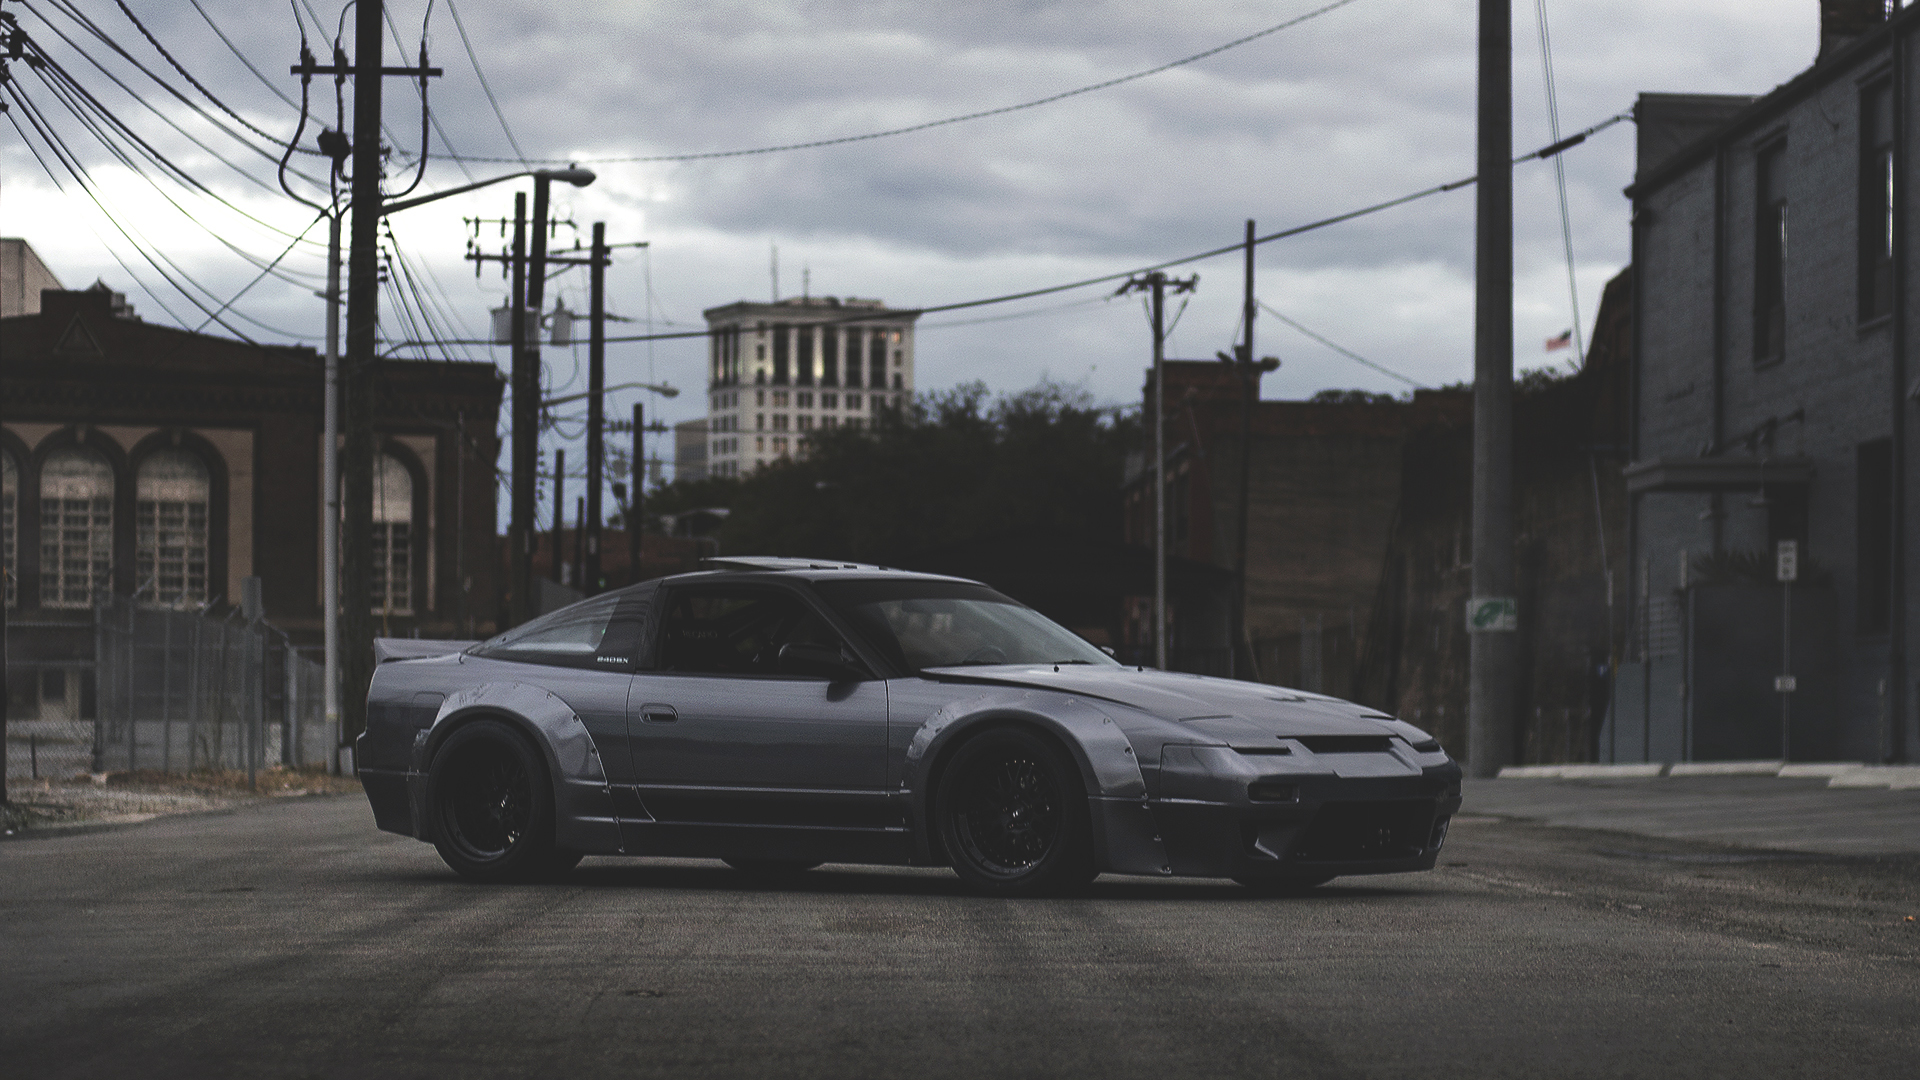 5 Nissan 240SX HD Wallpapers | Backgrounds - Wallpaper Abyss